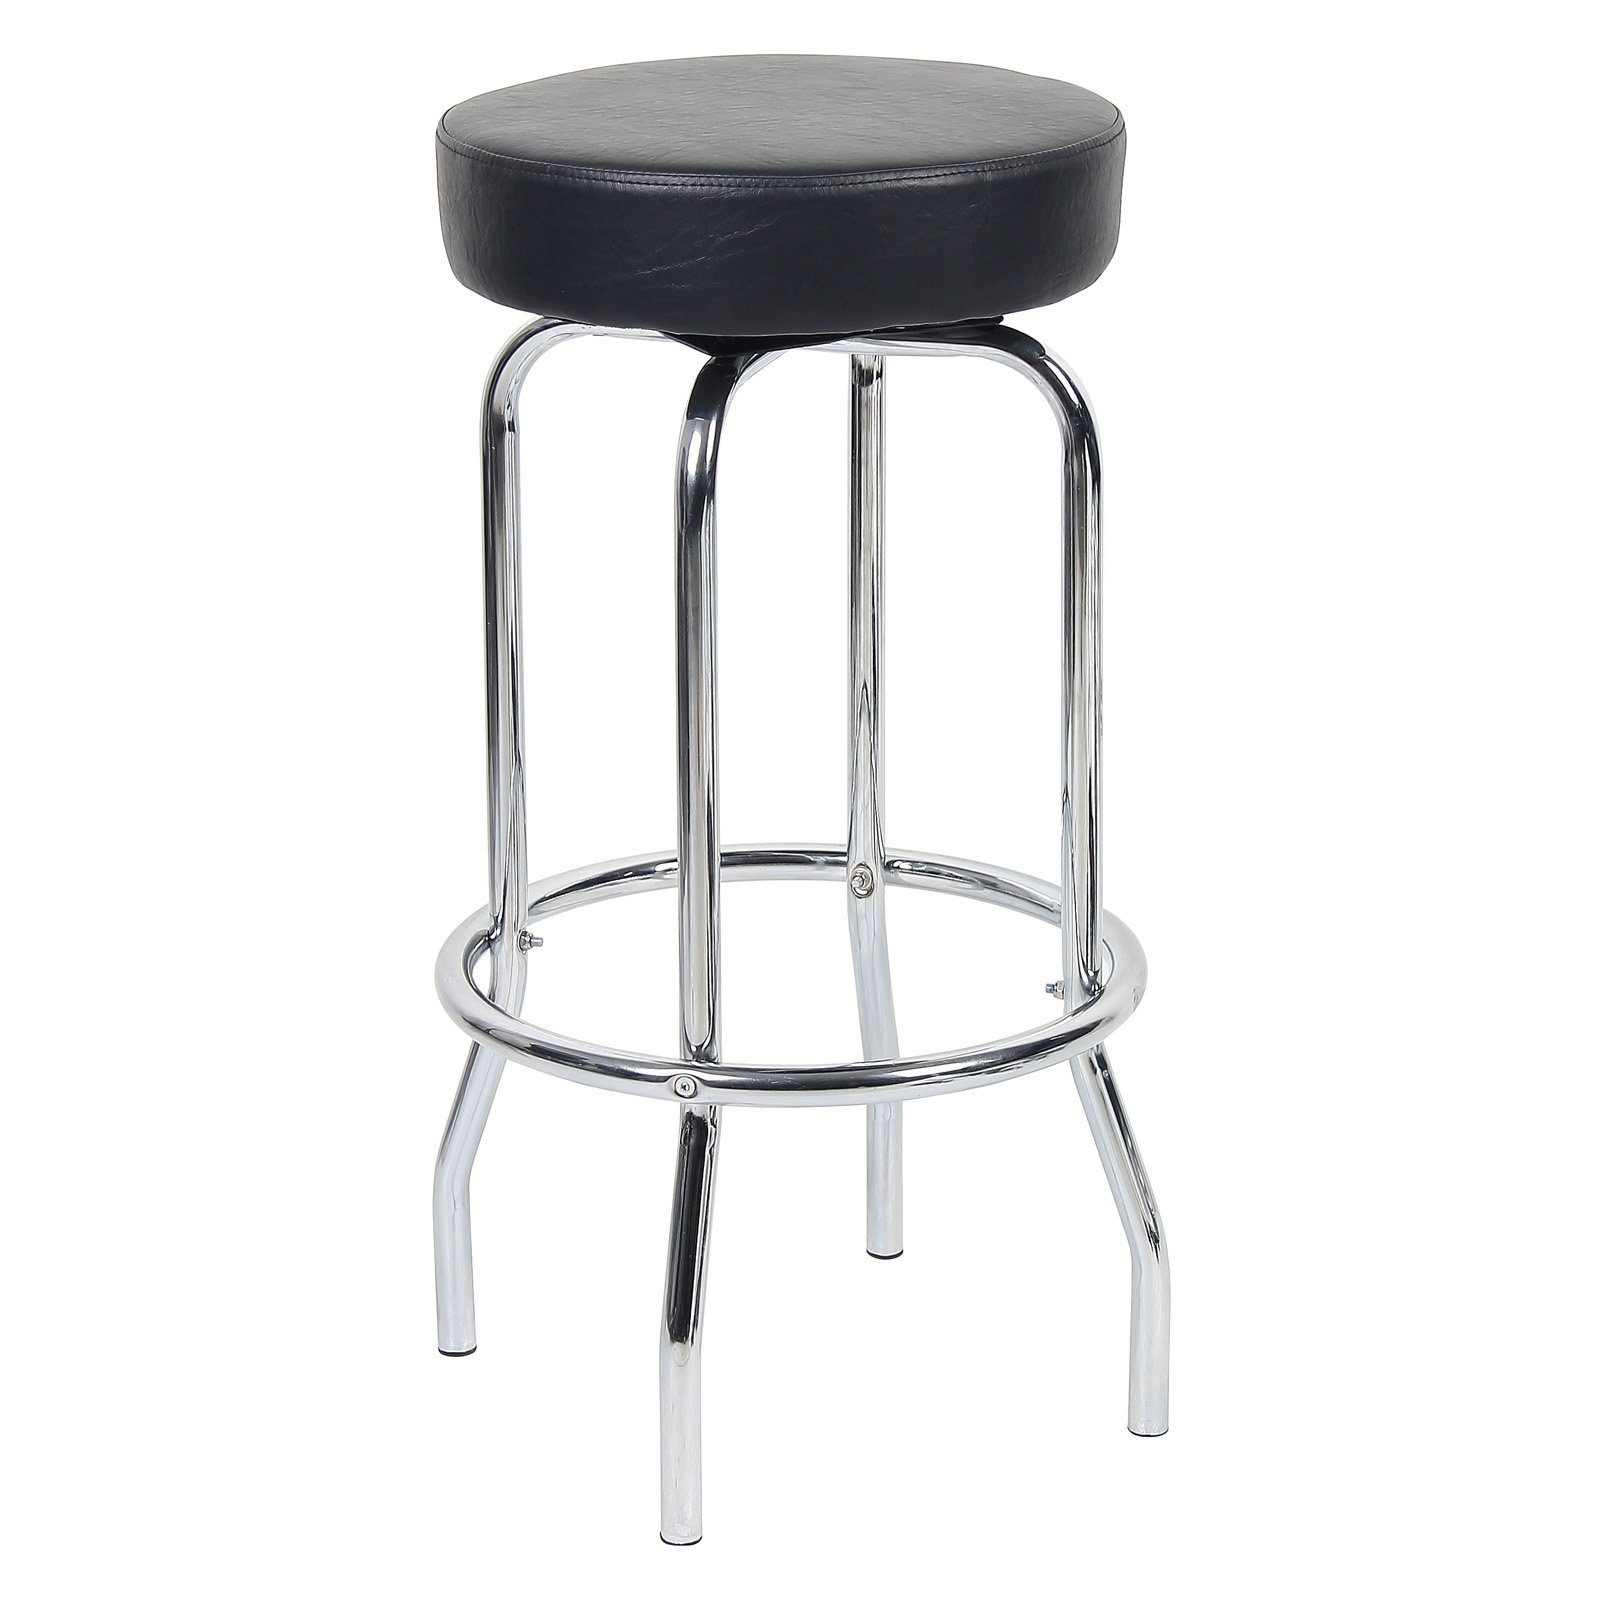 Stupendous Boss Bar Height Chrome And Black Retro Diner Stool In 2019 Ocoug Best Dining Table And Chair Ideas Images Ocougorg